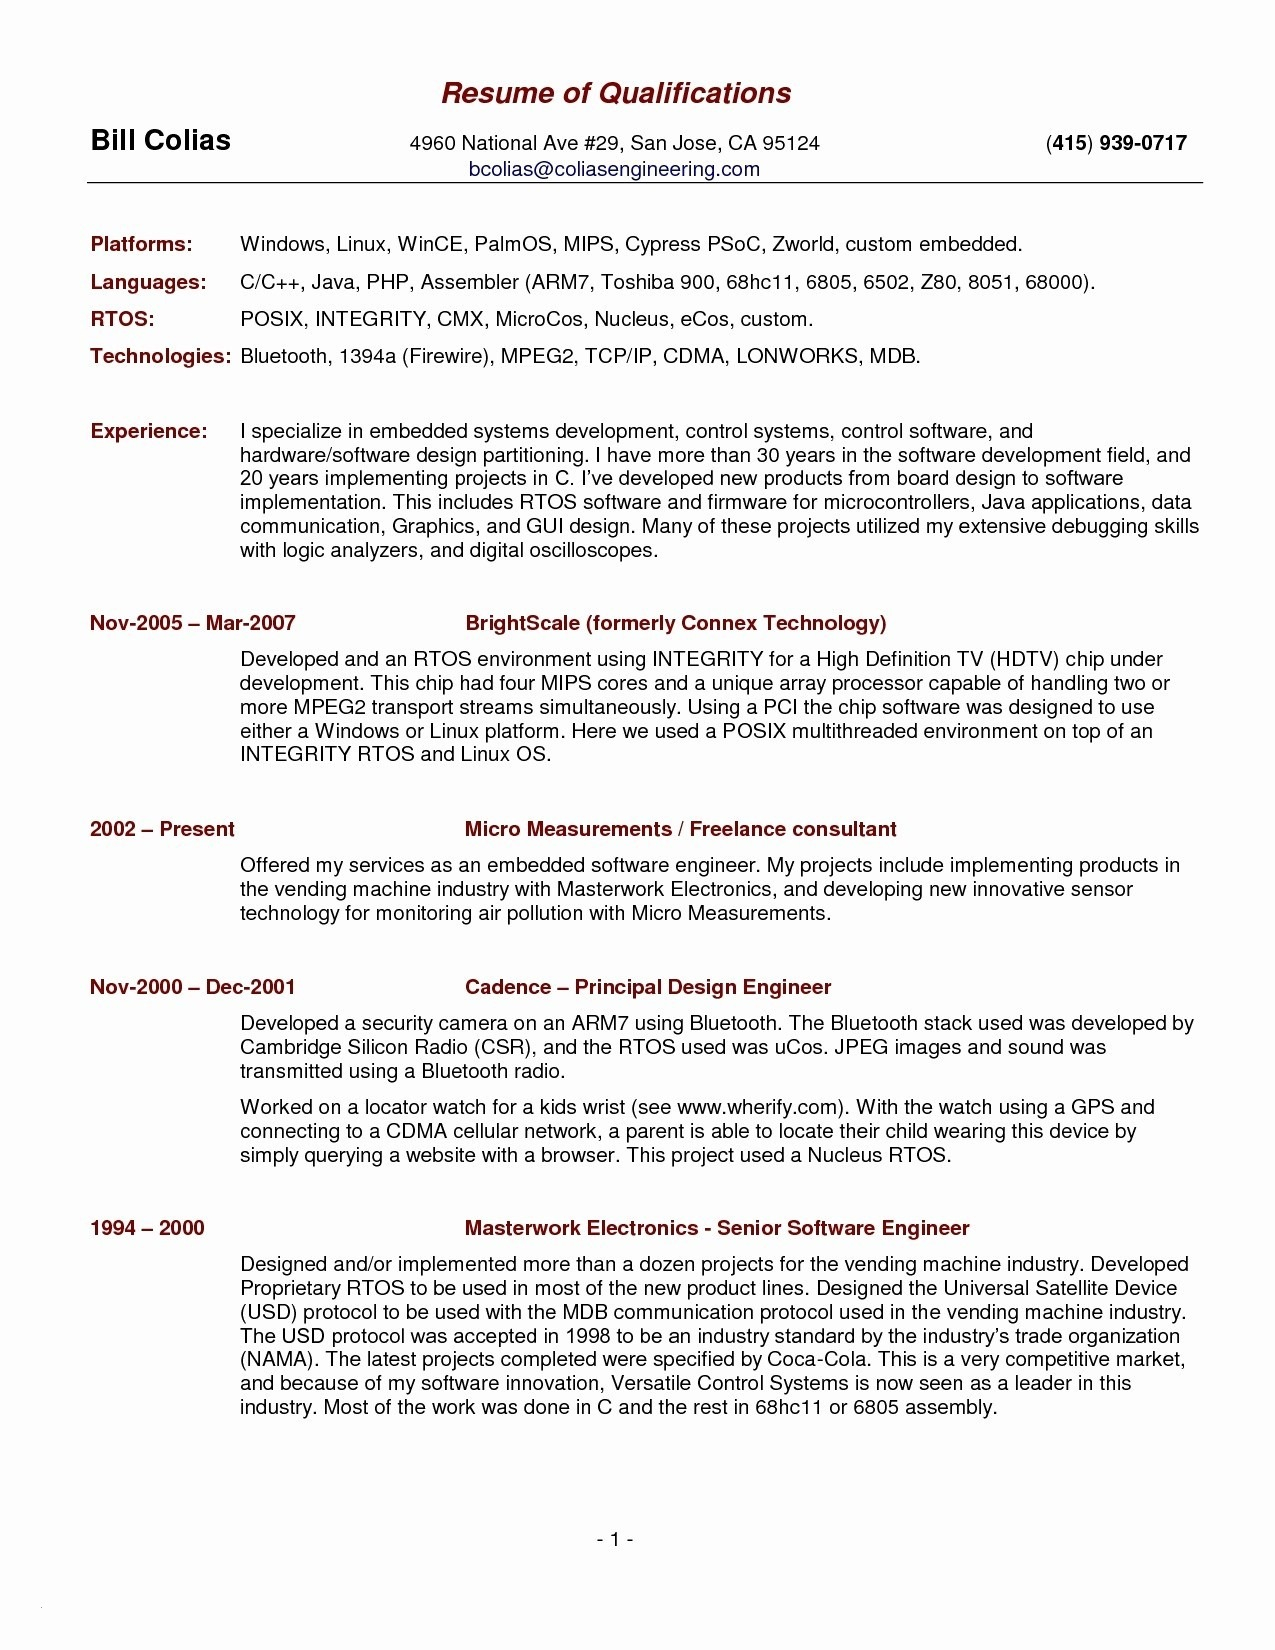 Resume Free Templates - Resume Templates Pdf Free Inspirational Lovely Pr Resume Template